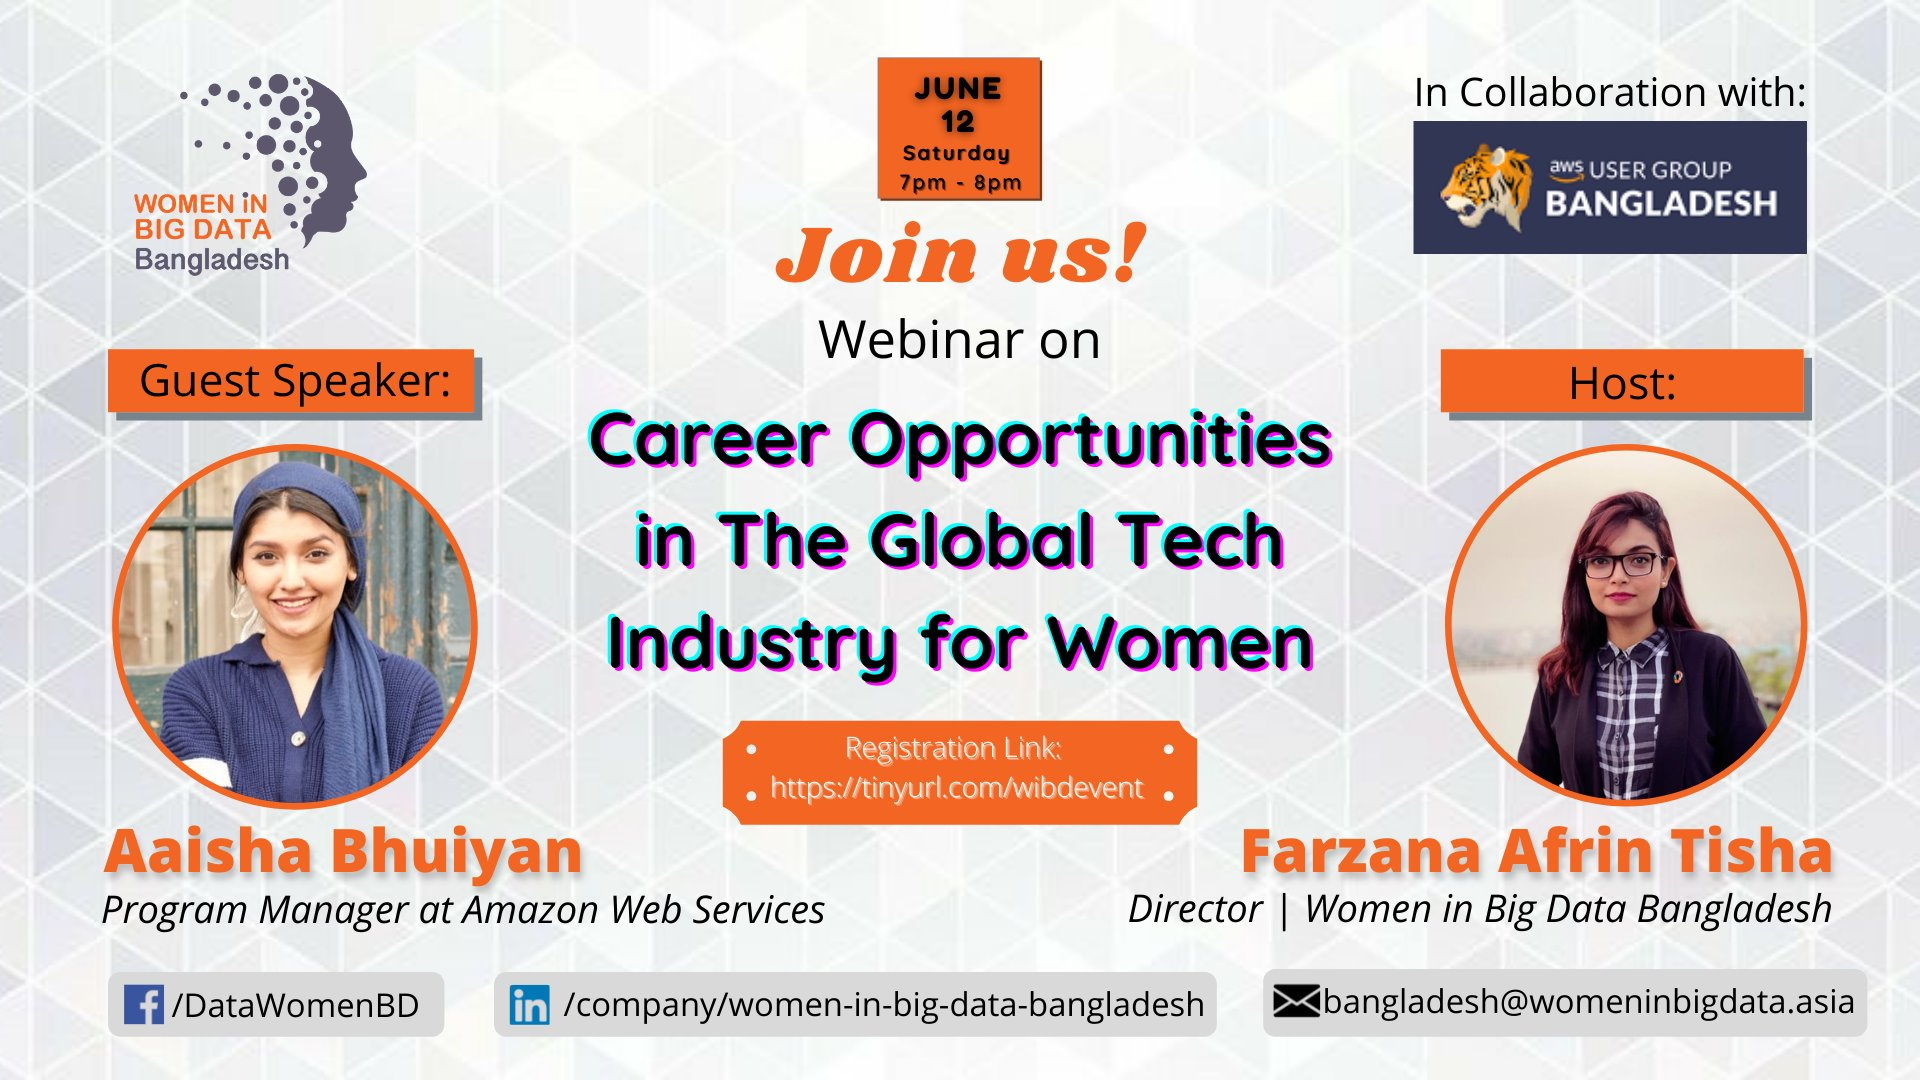 Career Opportunities in the Global Tech Industry for Women